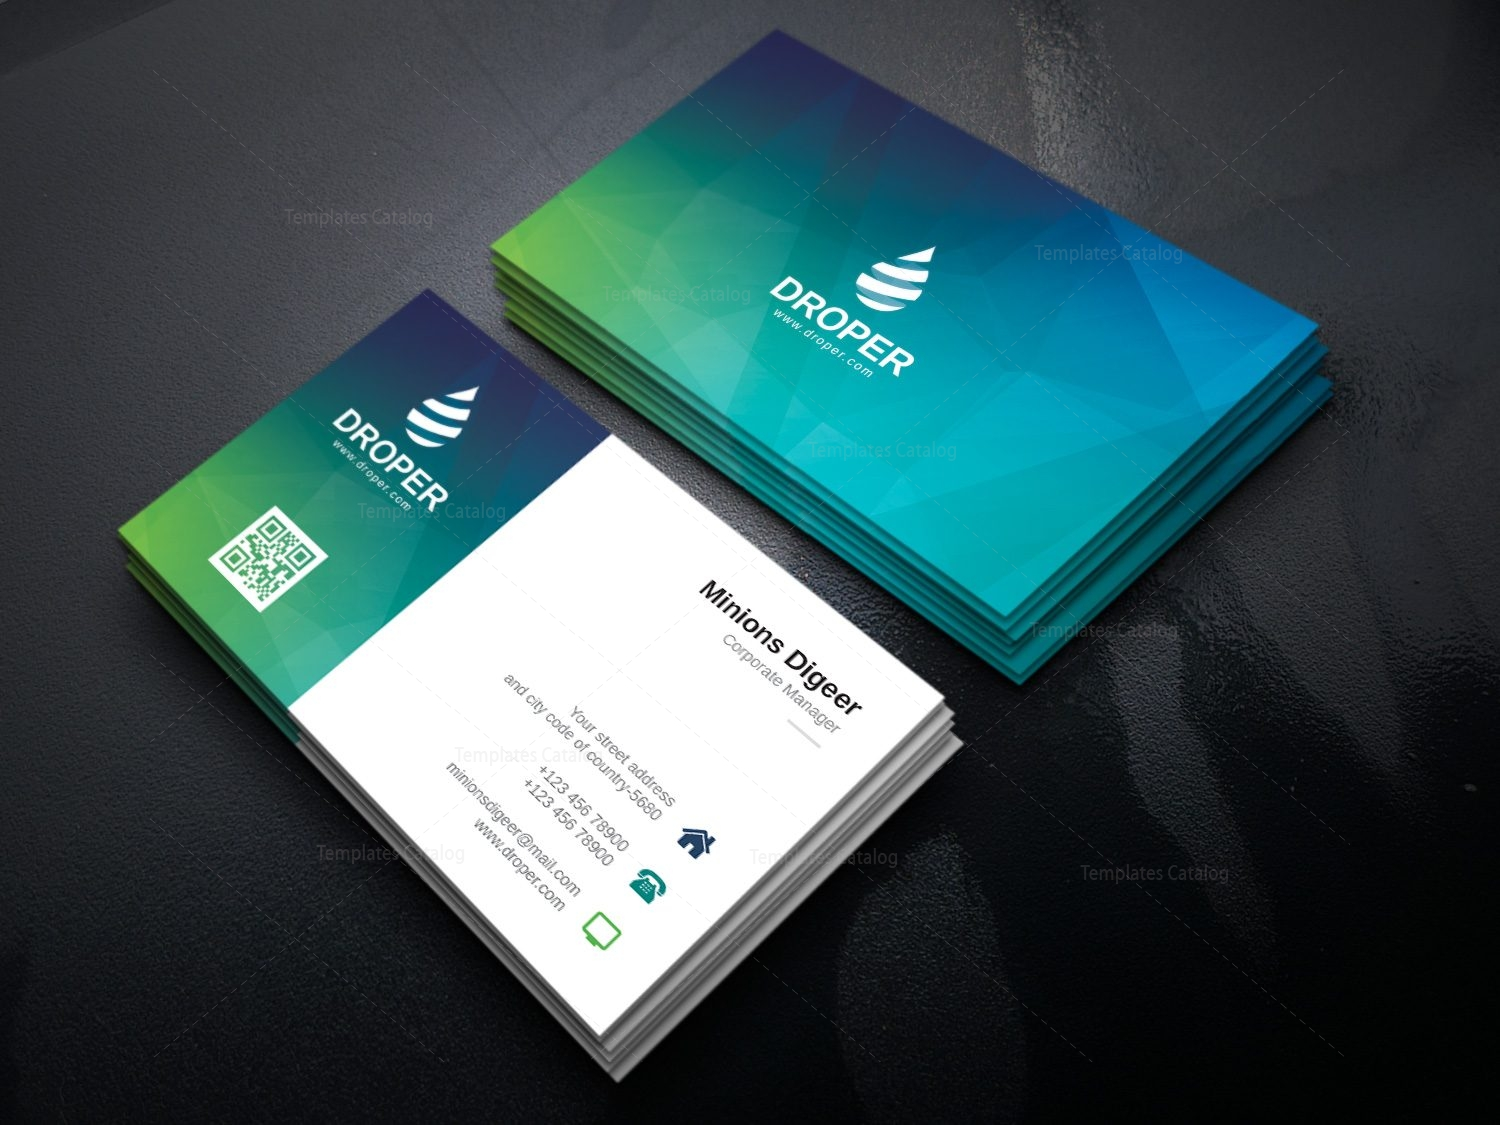 Dolphin modern corporate business card template 000924 template dolphin modern corporate business card template 3 flashek